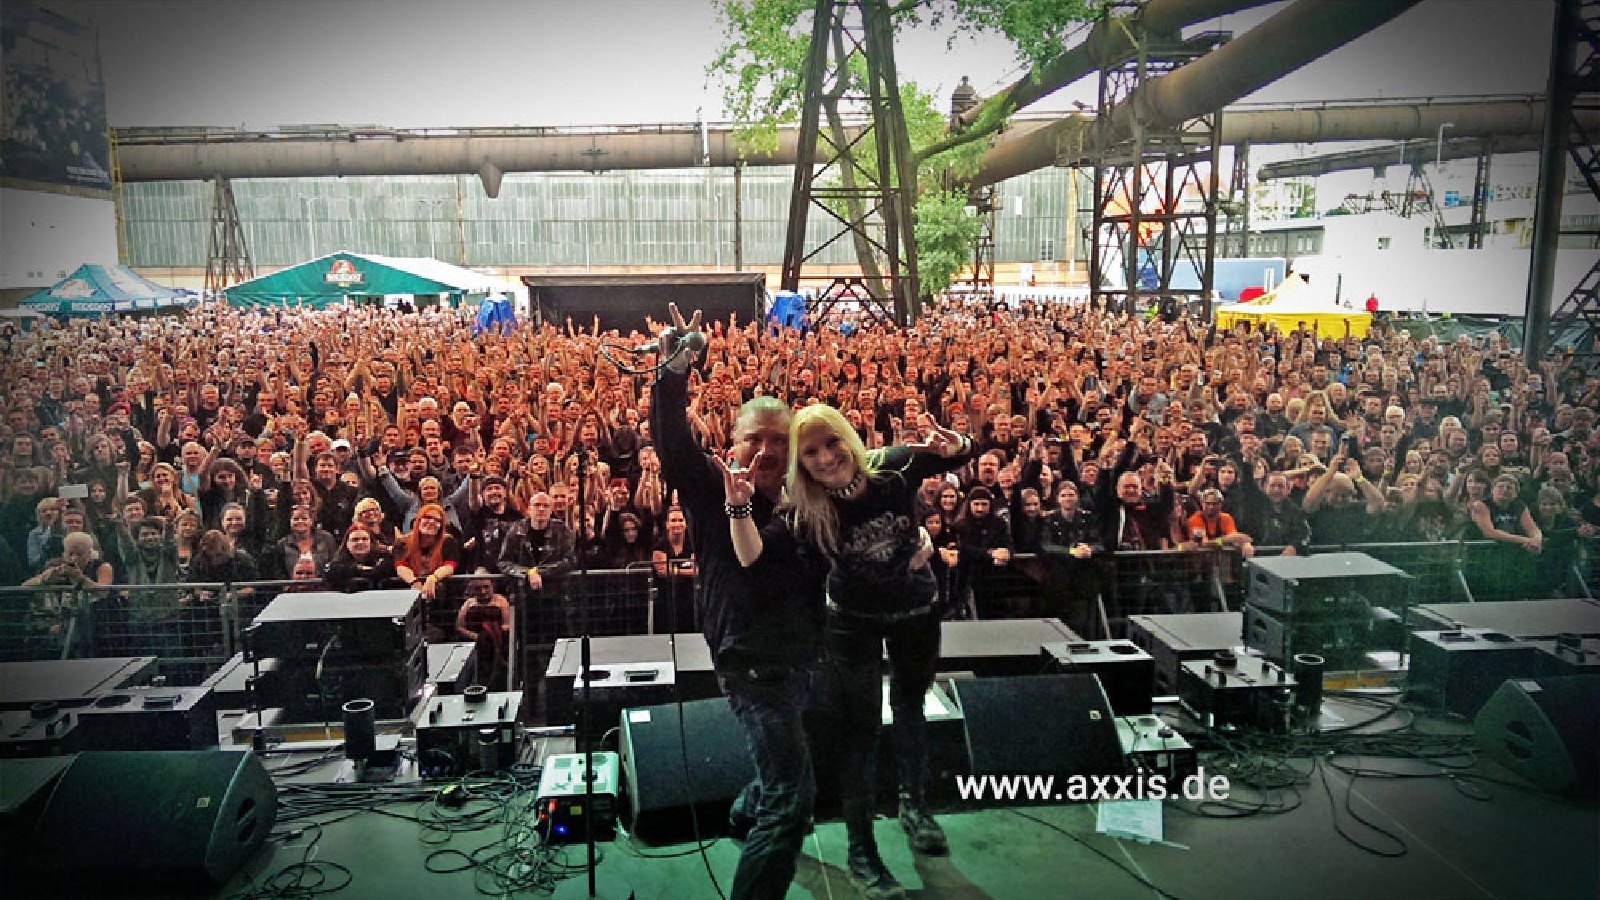 AXXIS in OSTRAVA